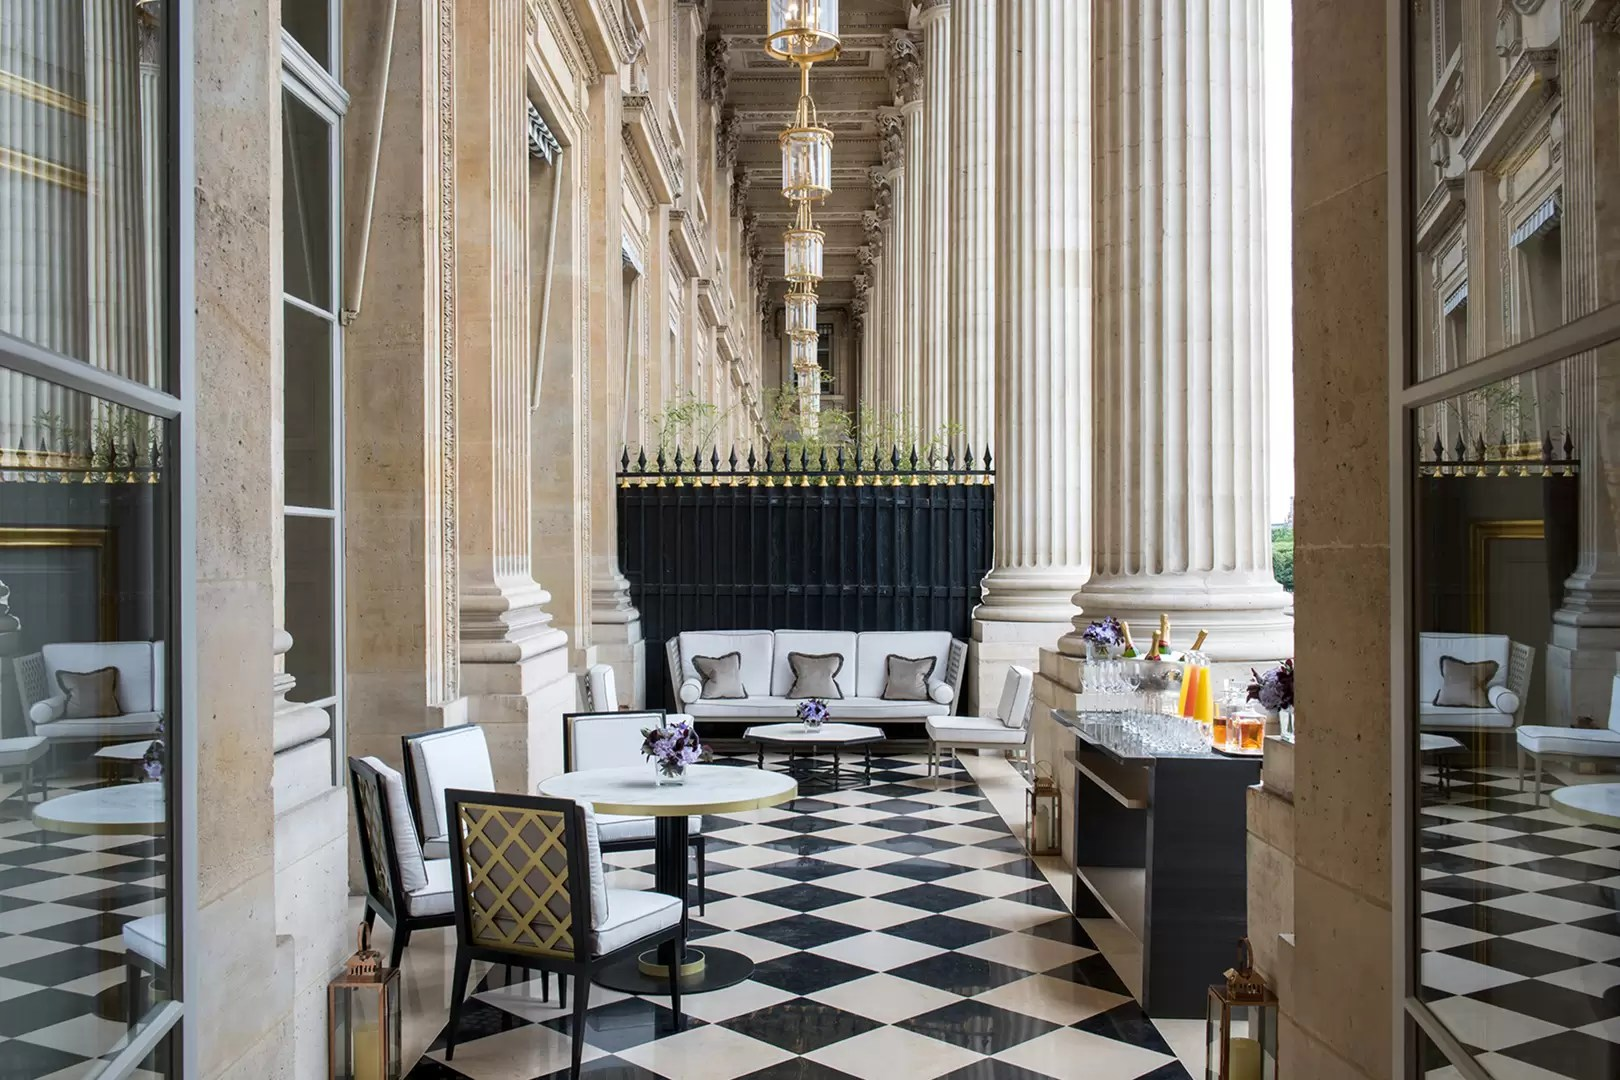 Hôtel De Crillon The Grande Dame Of Paris Hotels Now Does Brunch Tatler